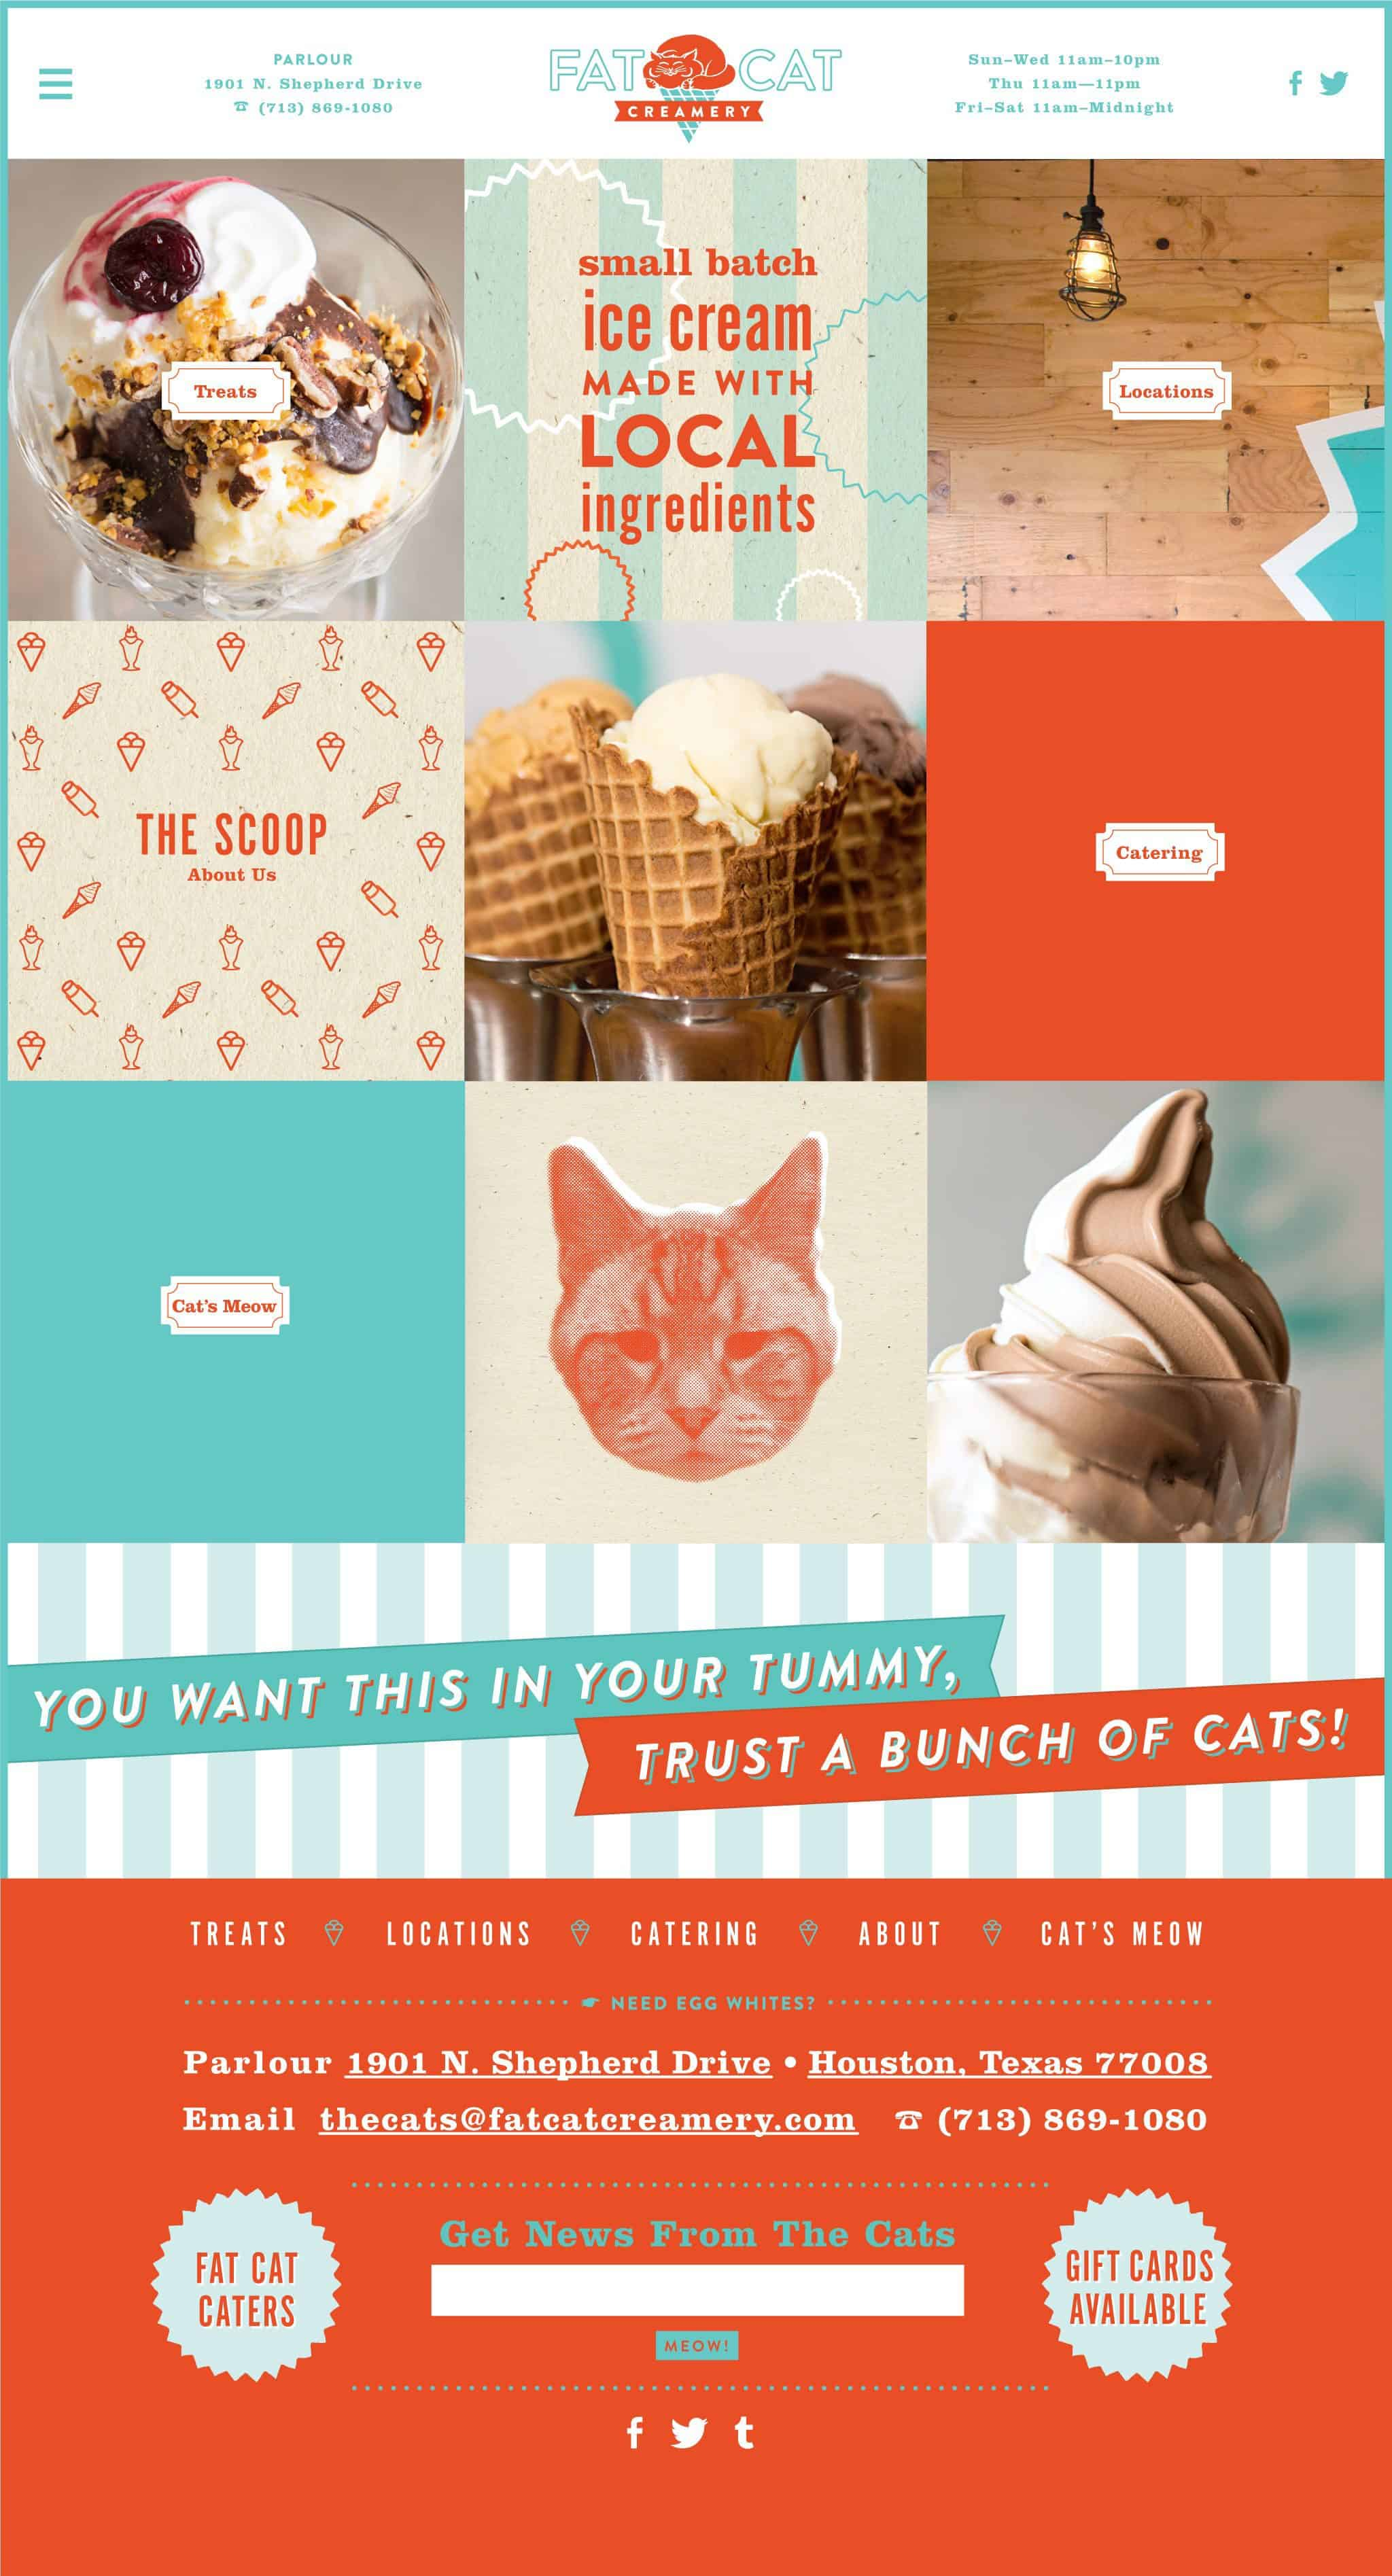 Website homepage layout for Fat Cat Creamery | Designed by Field of Study: A branding and graphic design consultancy | Houston TX | Jennifer Blanco & John Earles